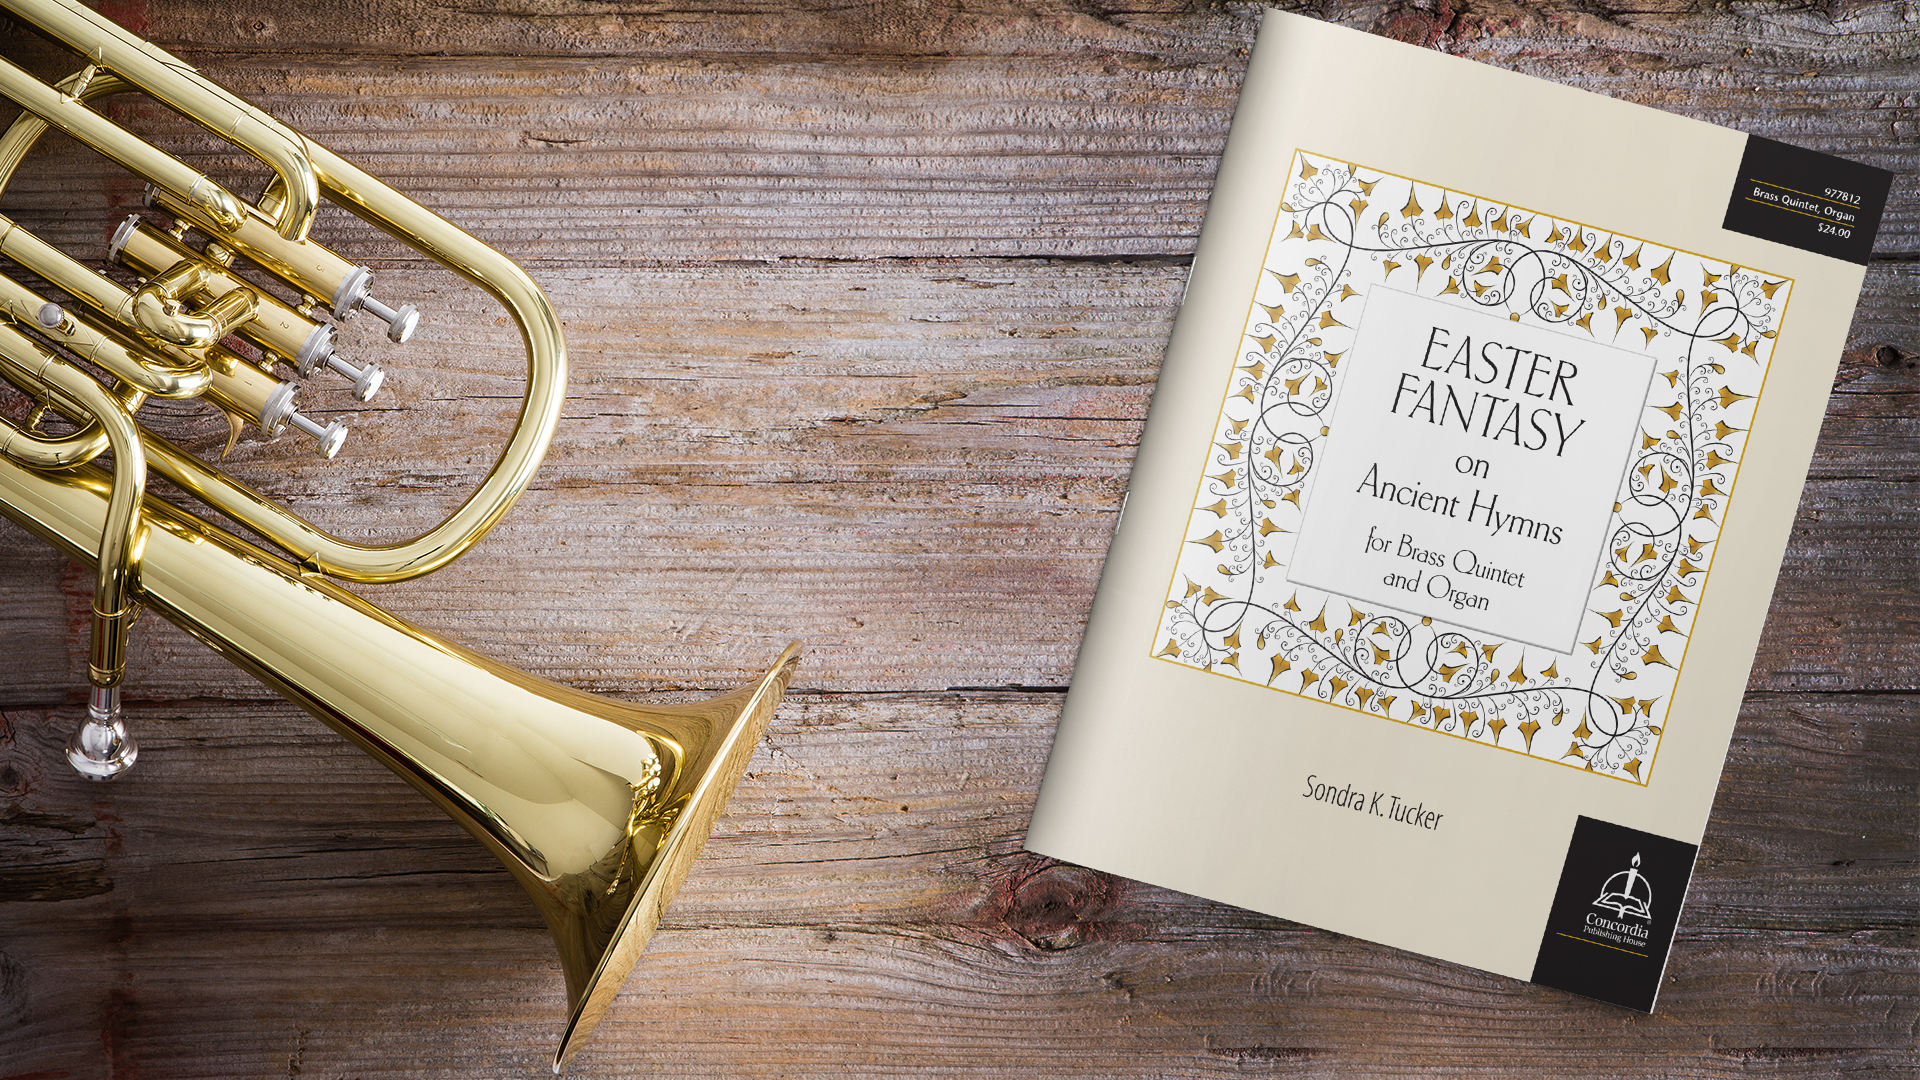 product-of-the-month-easter-fantasy-on-ancient-hymns-for-brass-quintet-and-organ-blog-post